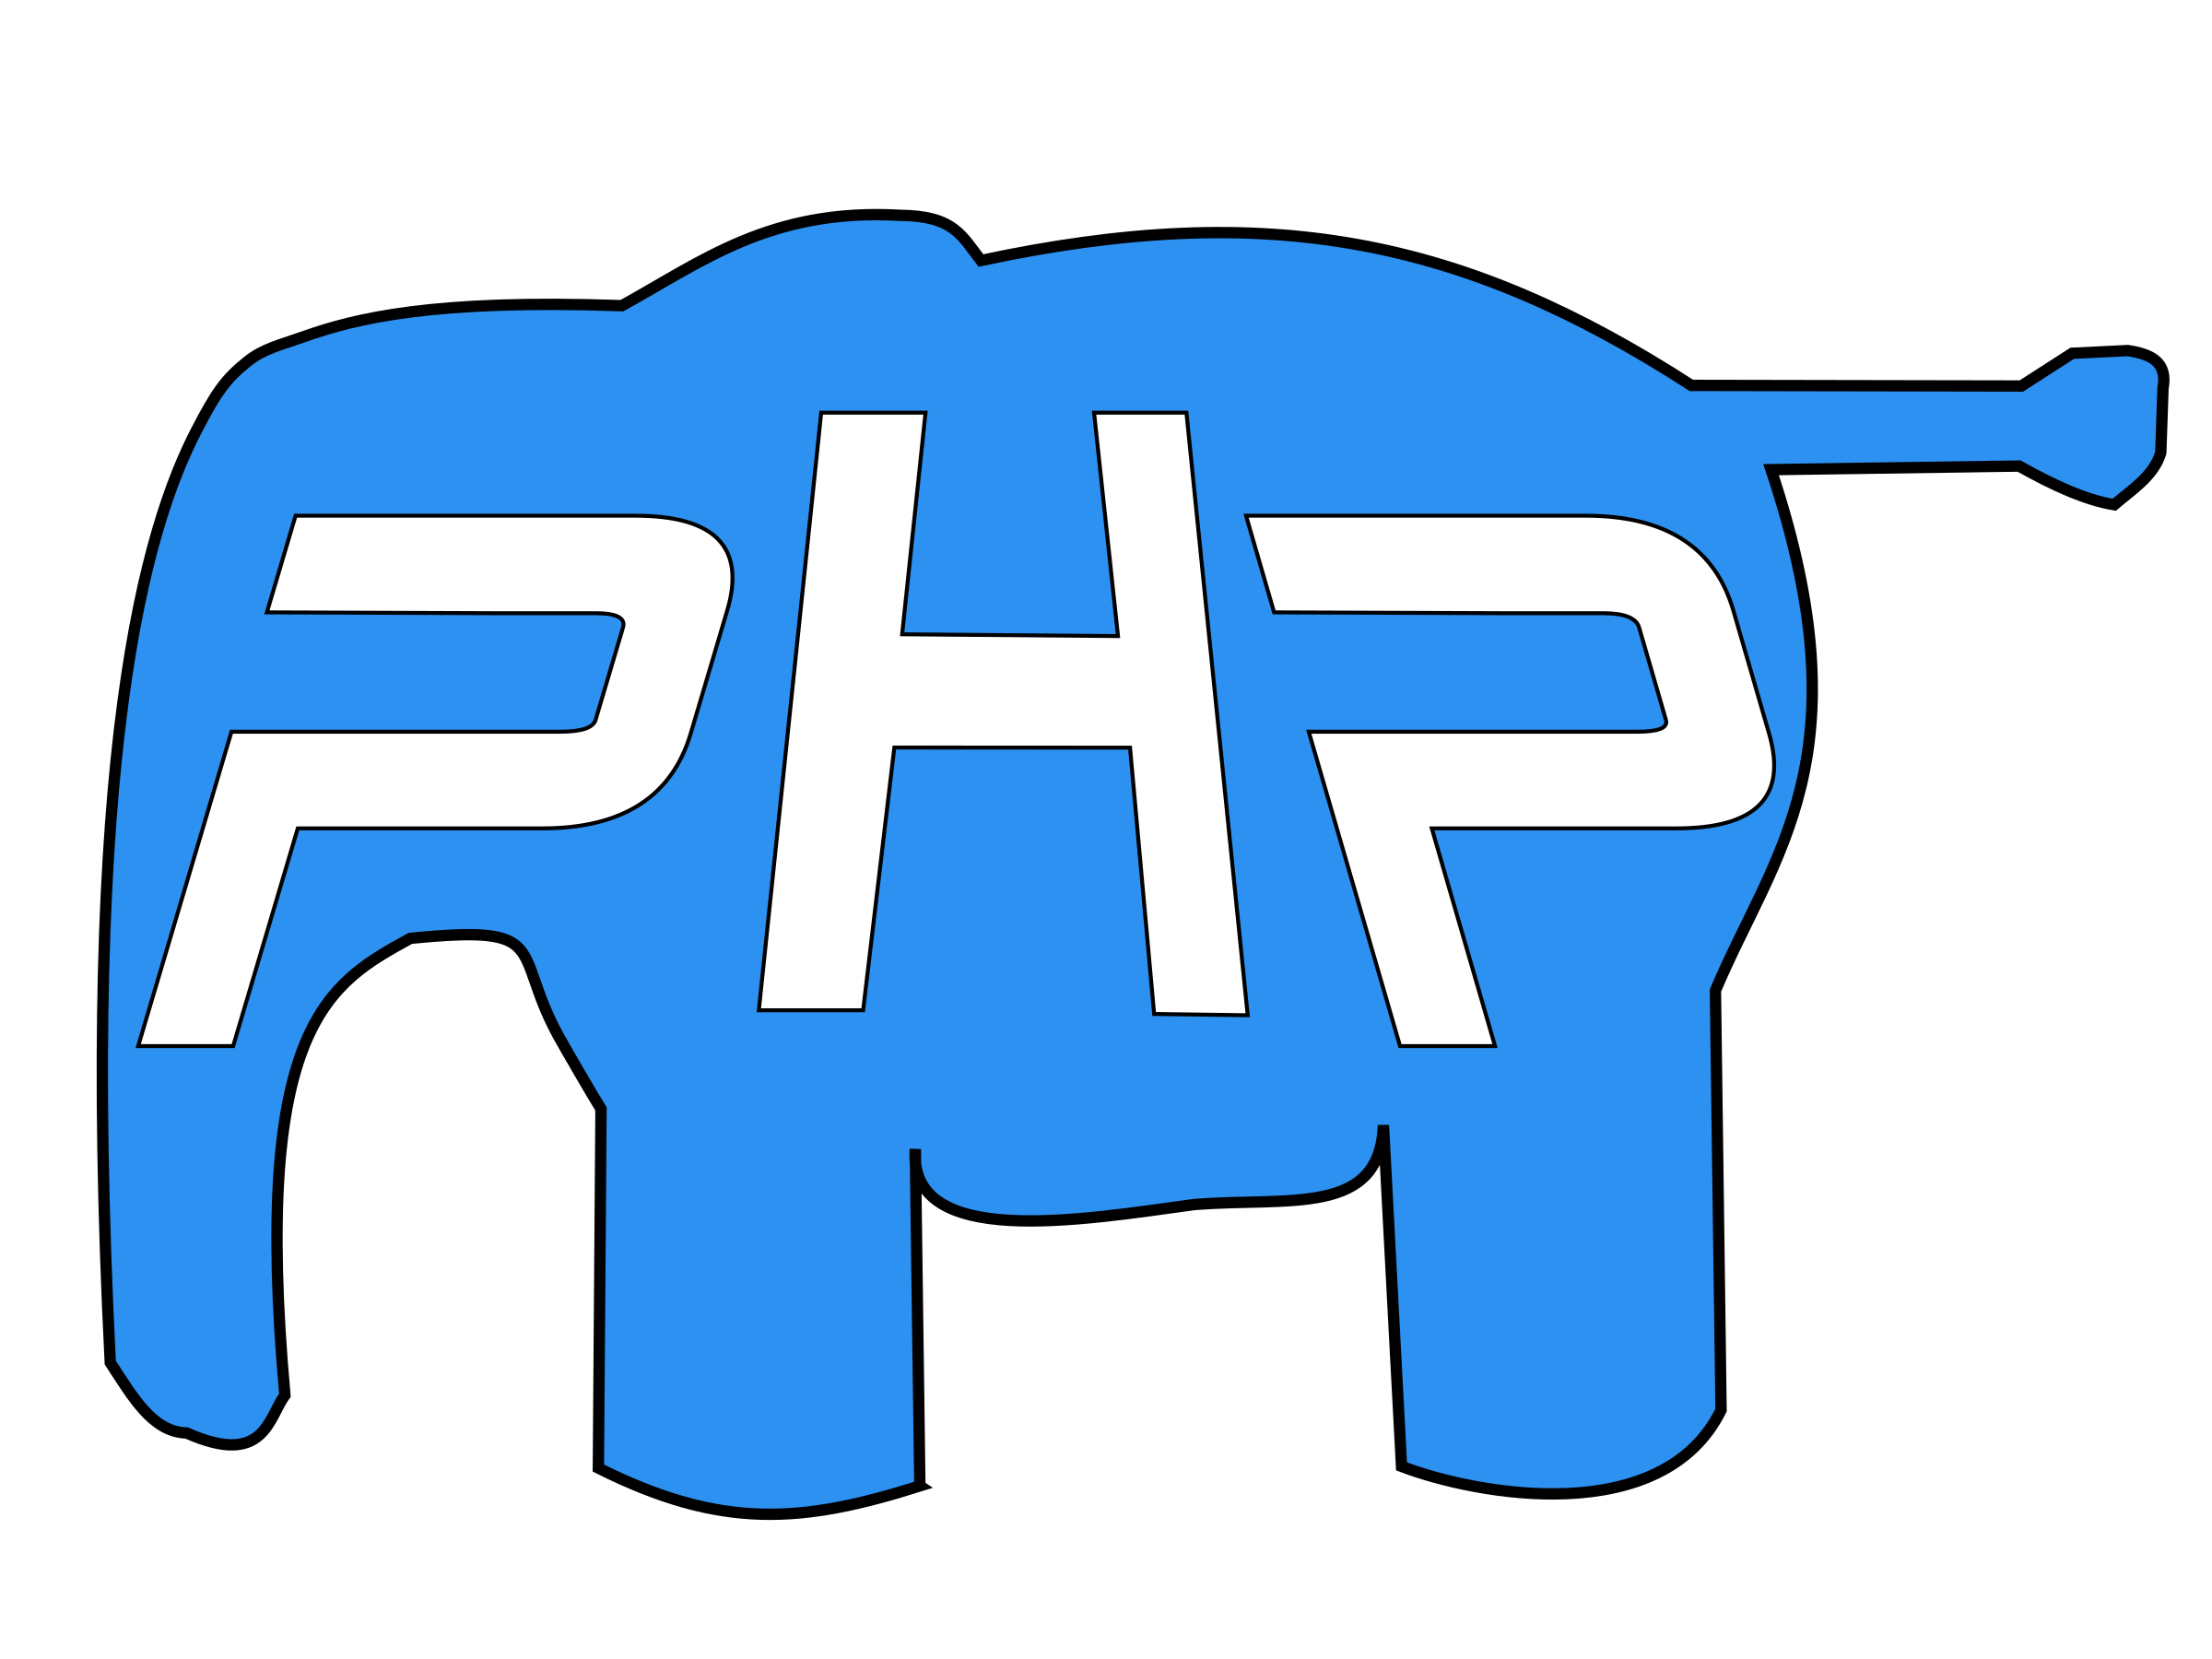 PHP elephant by asrafil